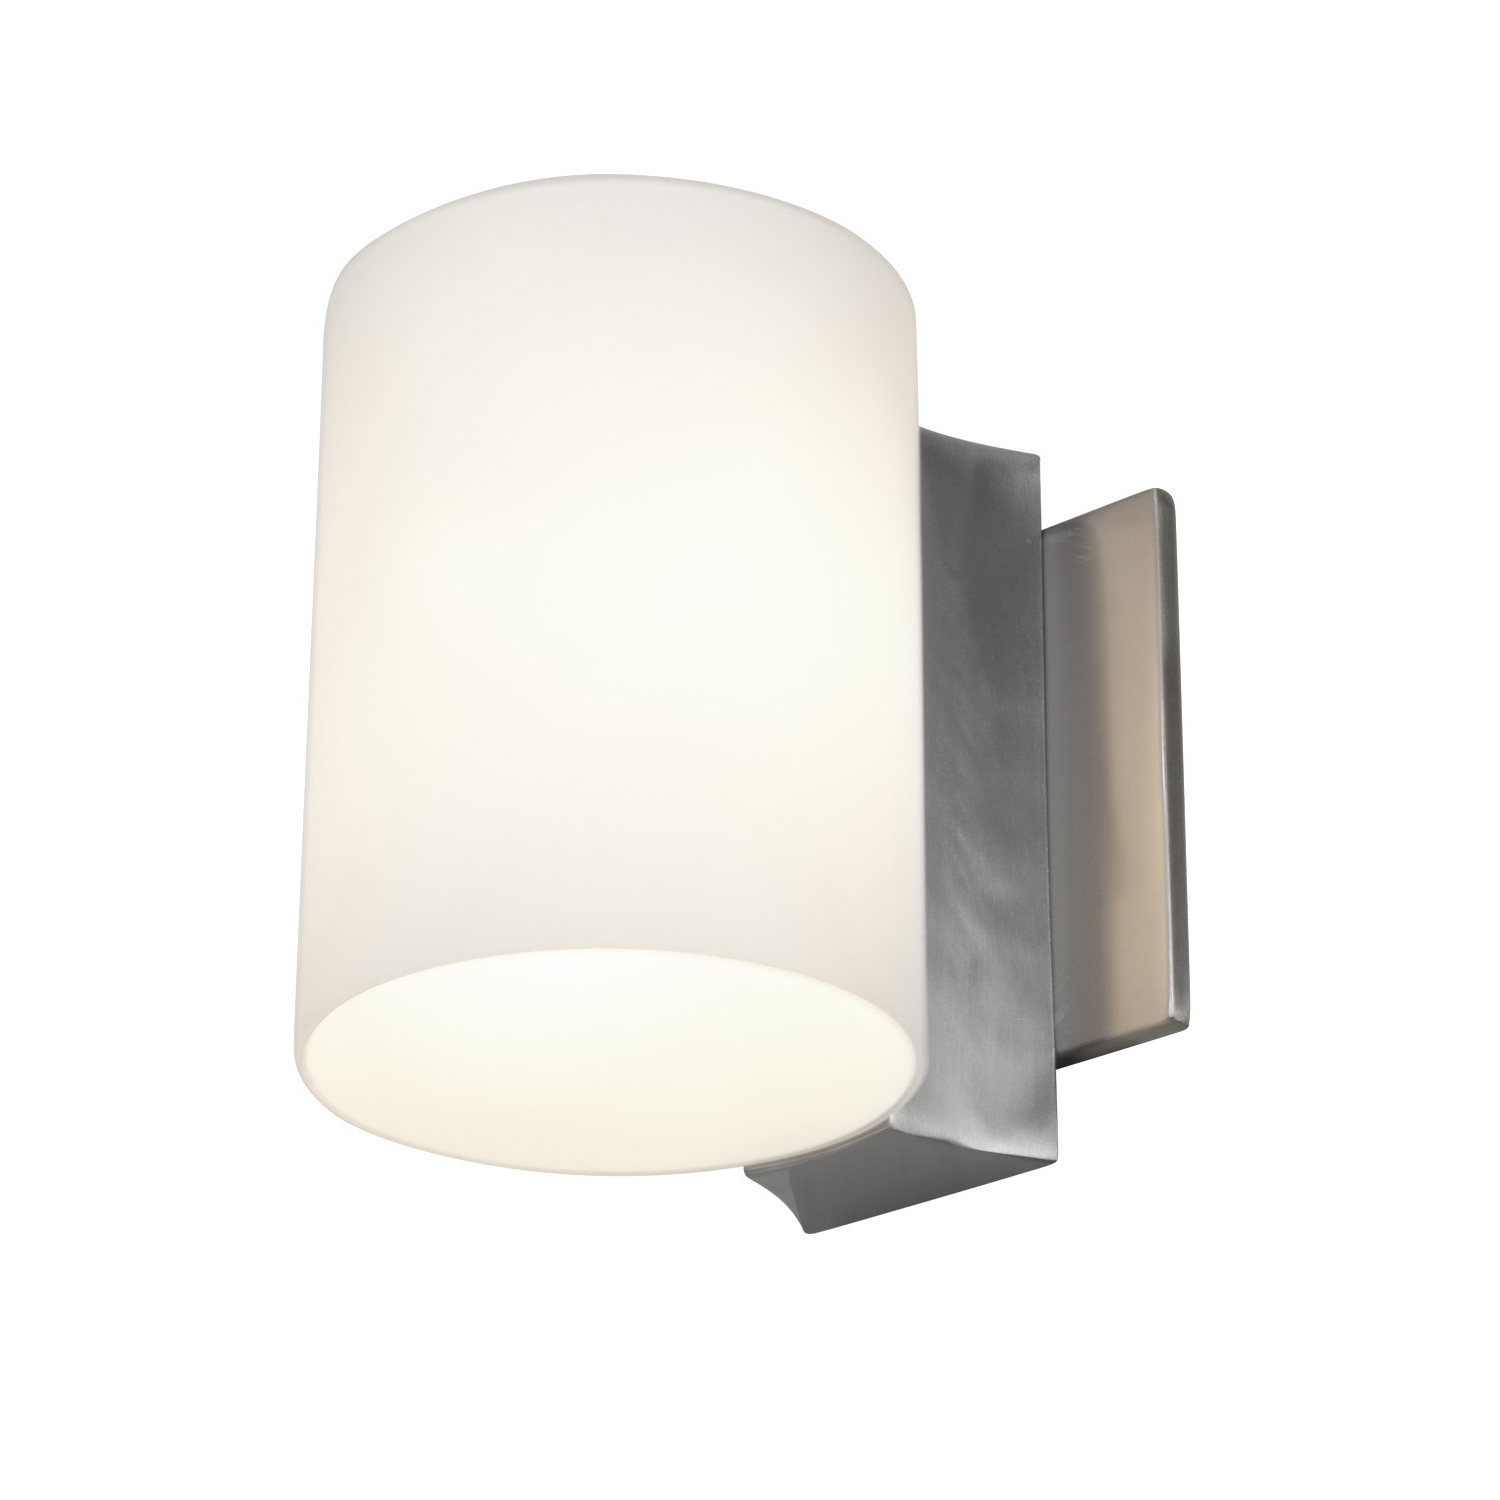 Light : Furniture White Lamp Shades Stainless Steel Modern Bathroom For Widely Used Wall Mounted Chandeliers (View 6 of 20)